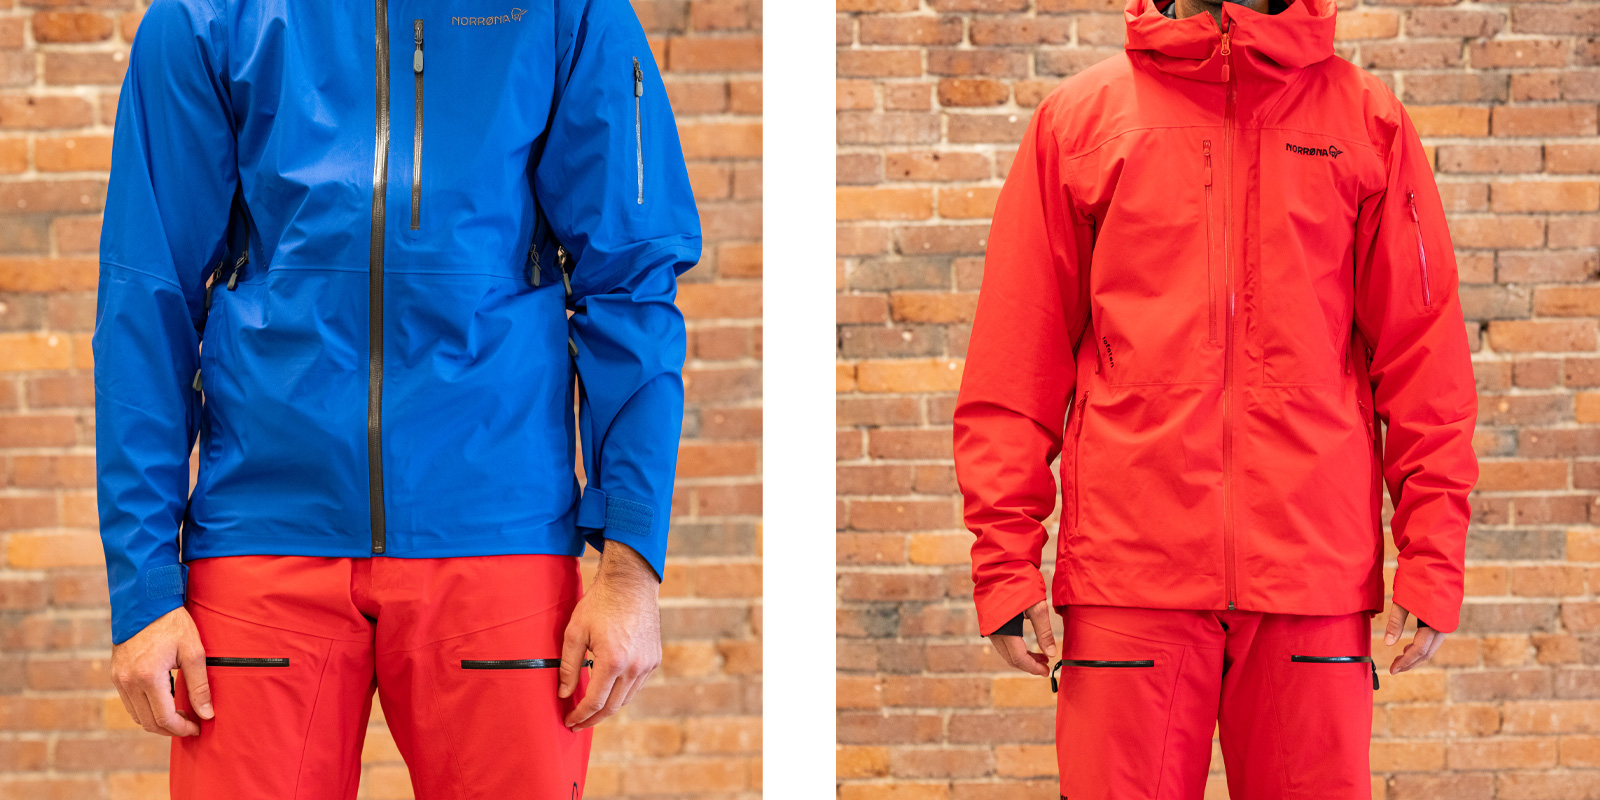 How Should Ski Jackets Fit Just Right